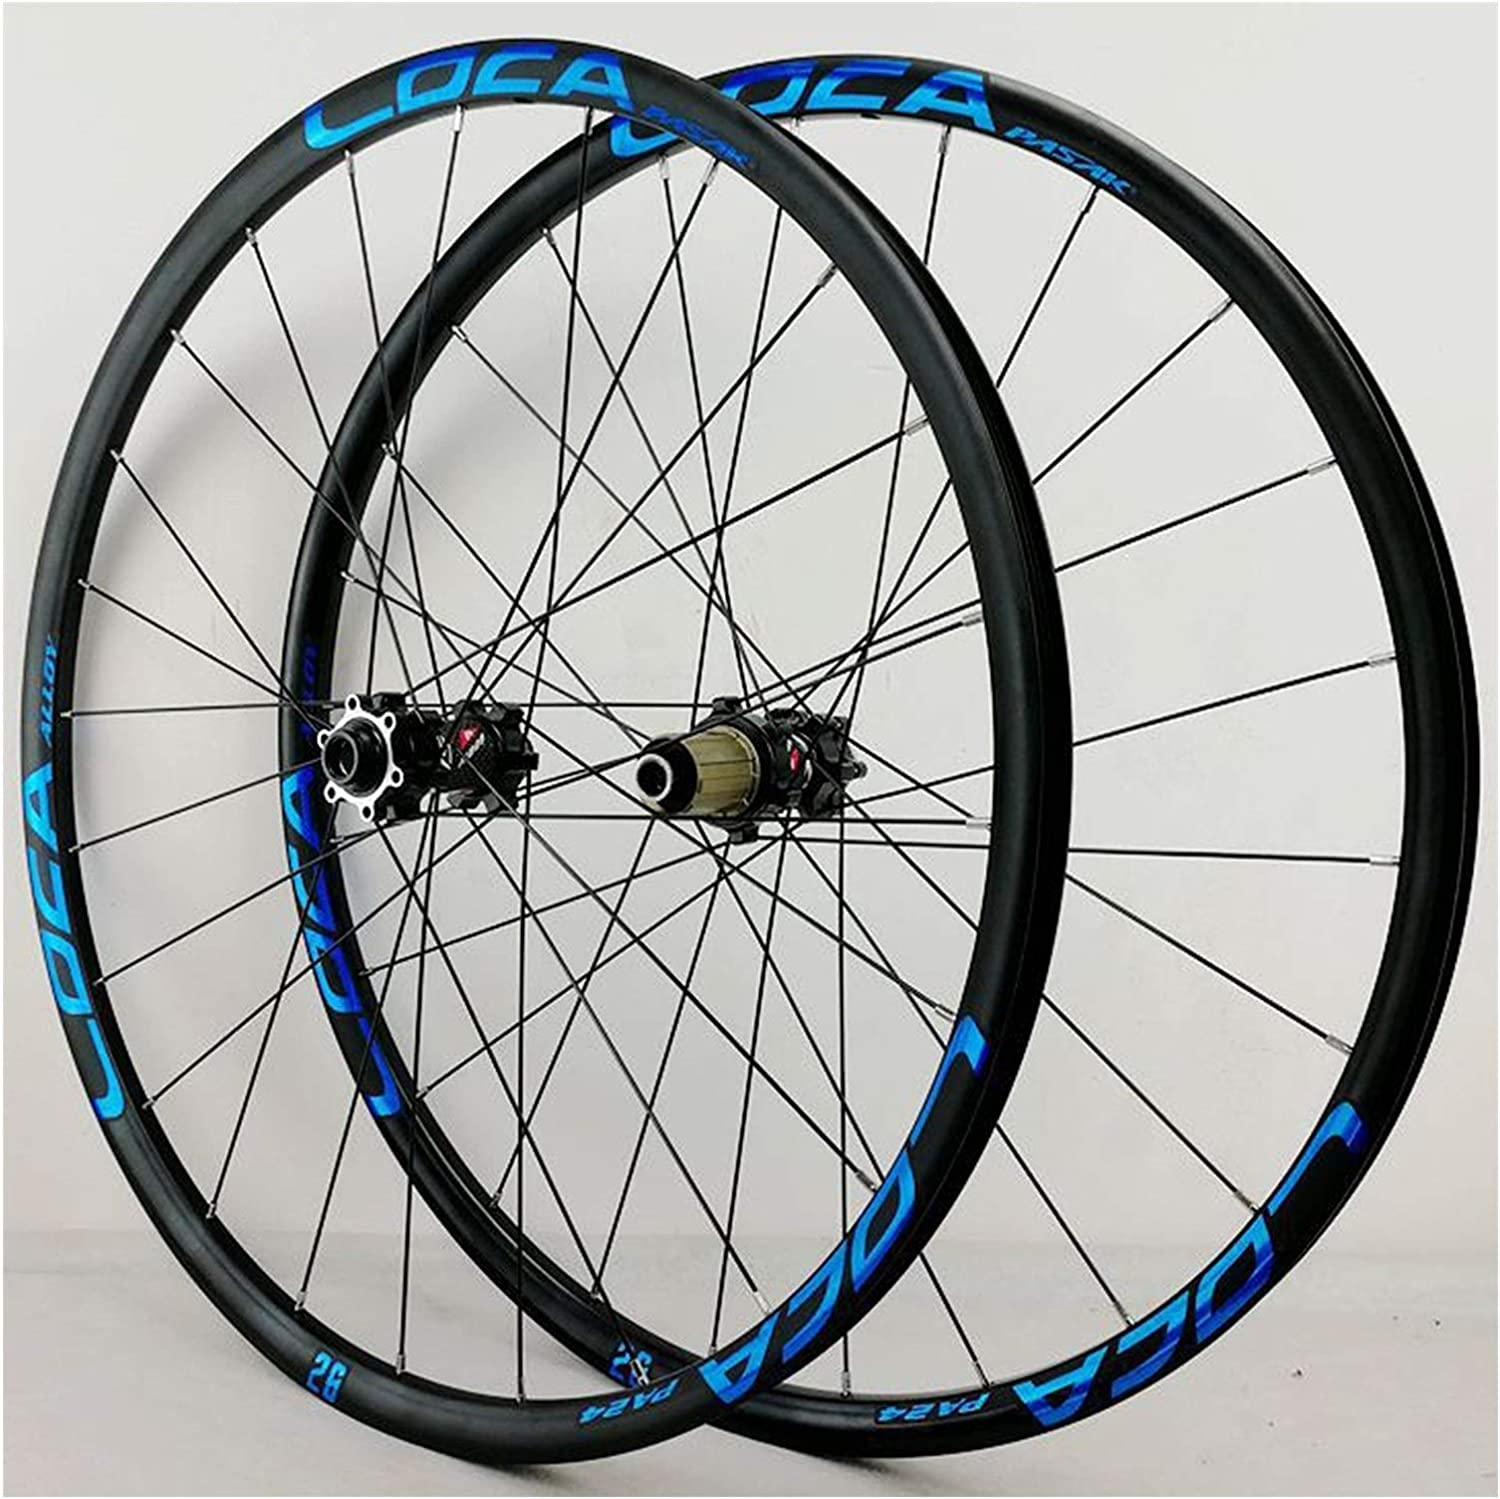 LICHUXIN Mountain Bike 26 27.5 Wheelset Max 79% OFF Large-scale sale Wheel Rear 29inch Front